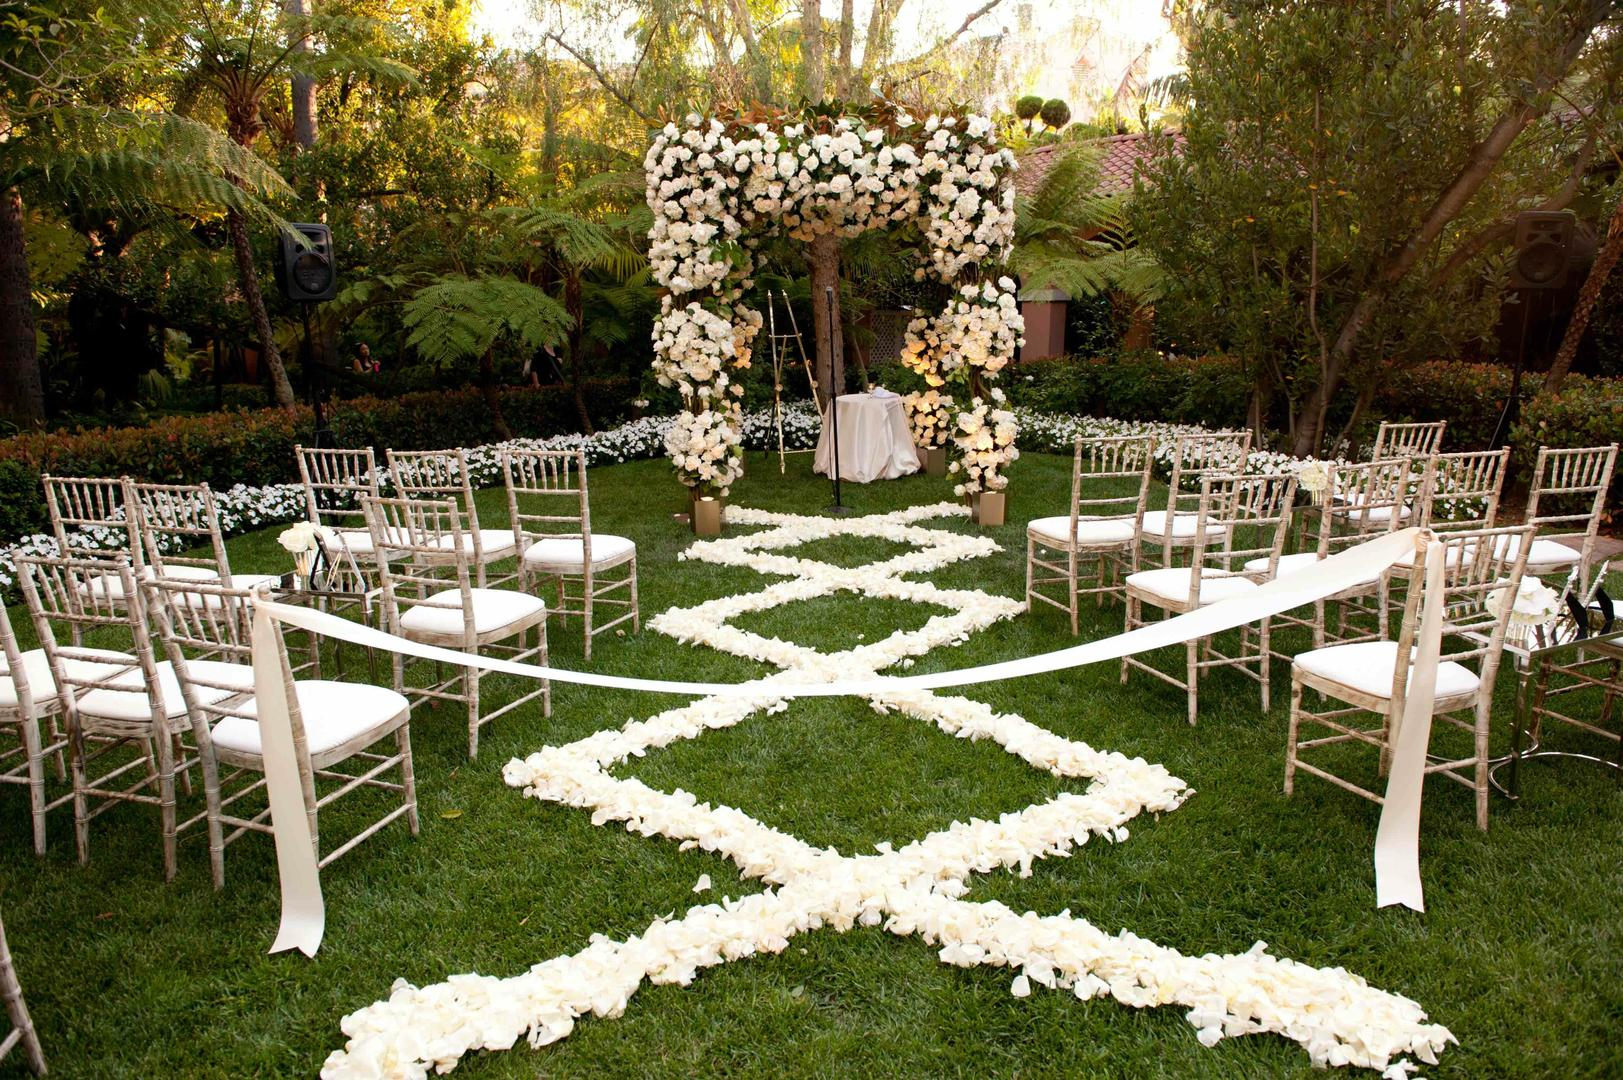 Flower petal designs for the wedding ceremony aisle inside weddings an organic approach to lining the aisle of alfresco ceremonies junglespirit Image collections